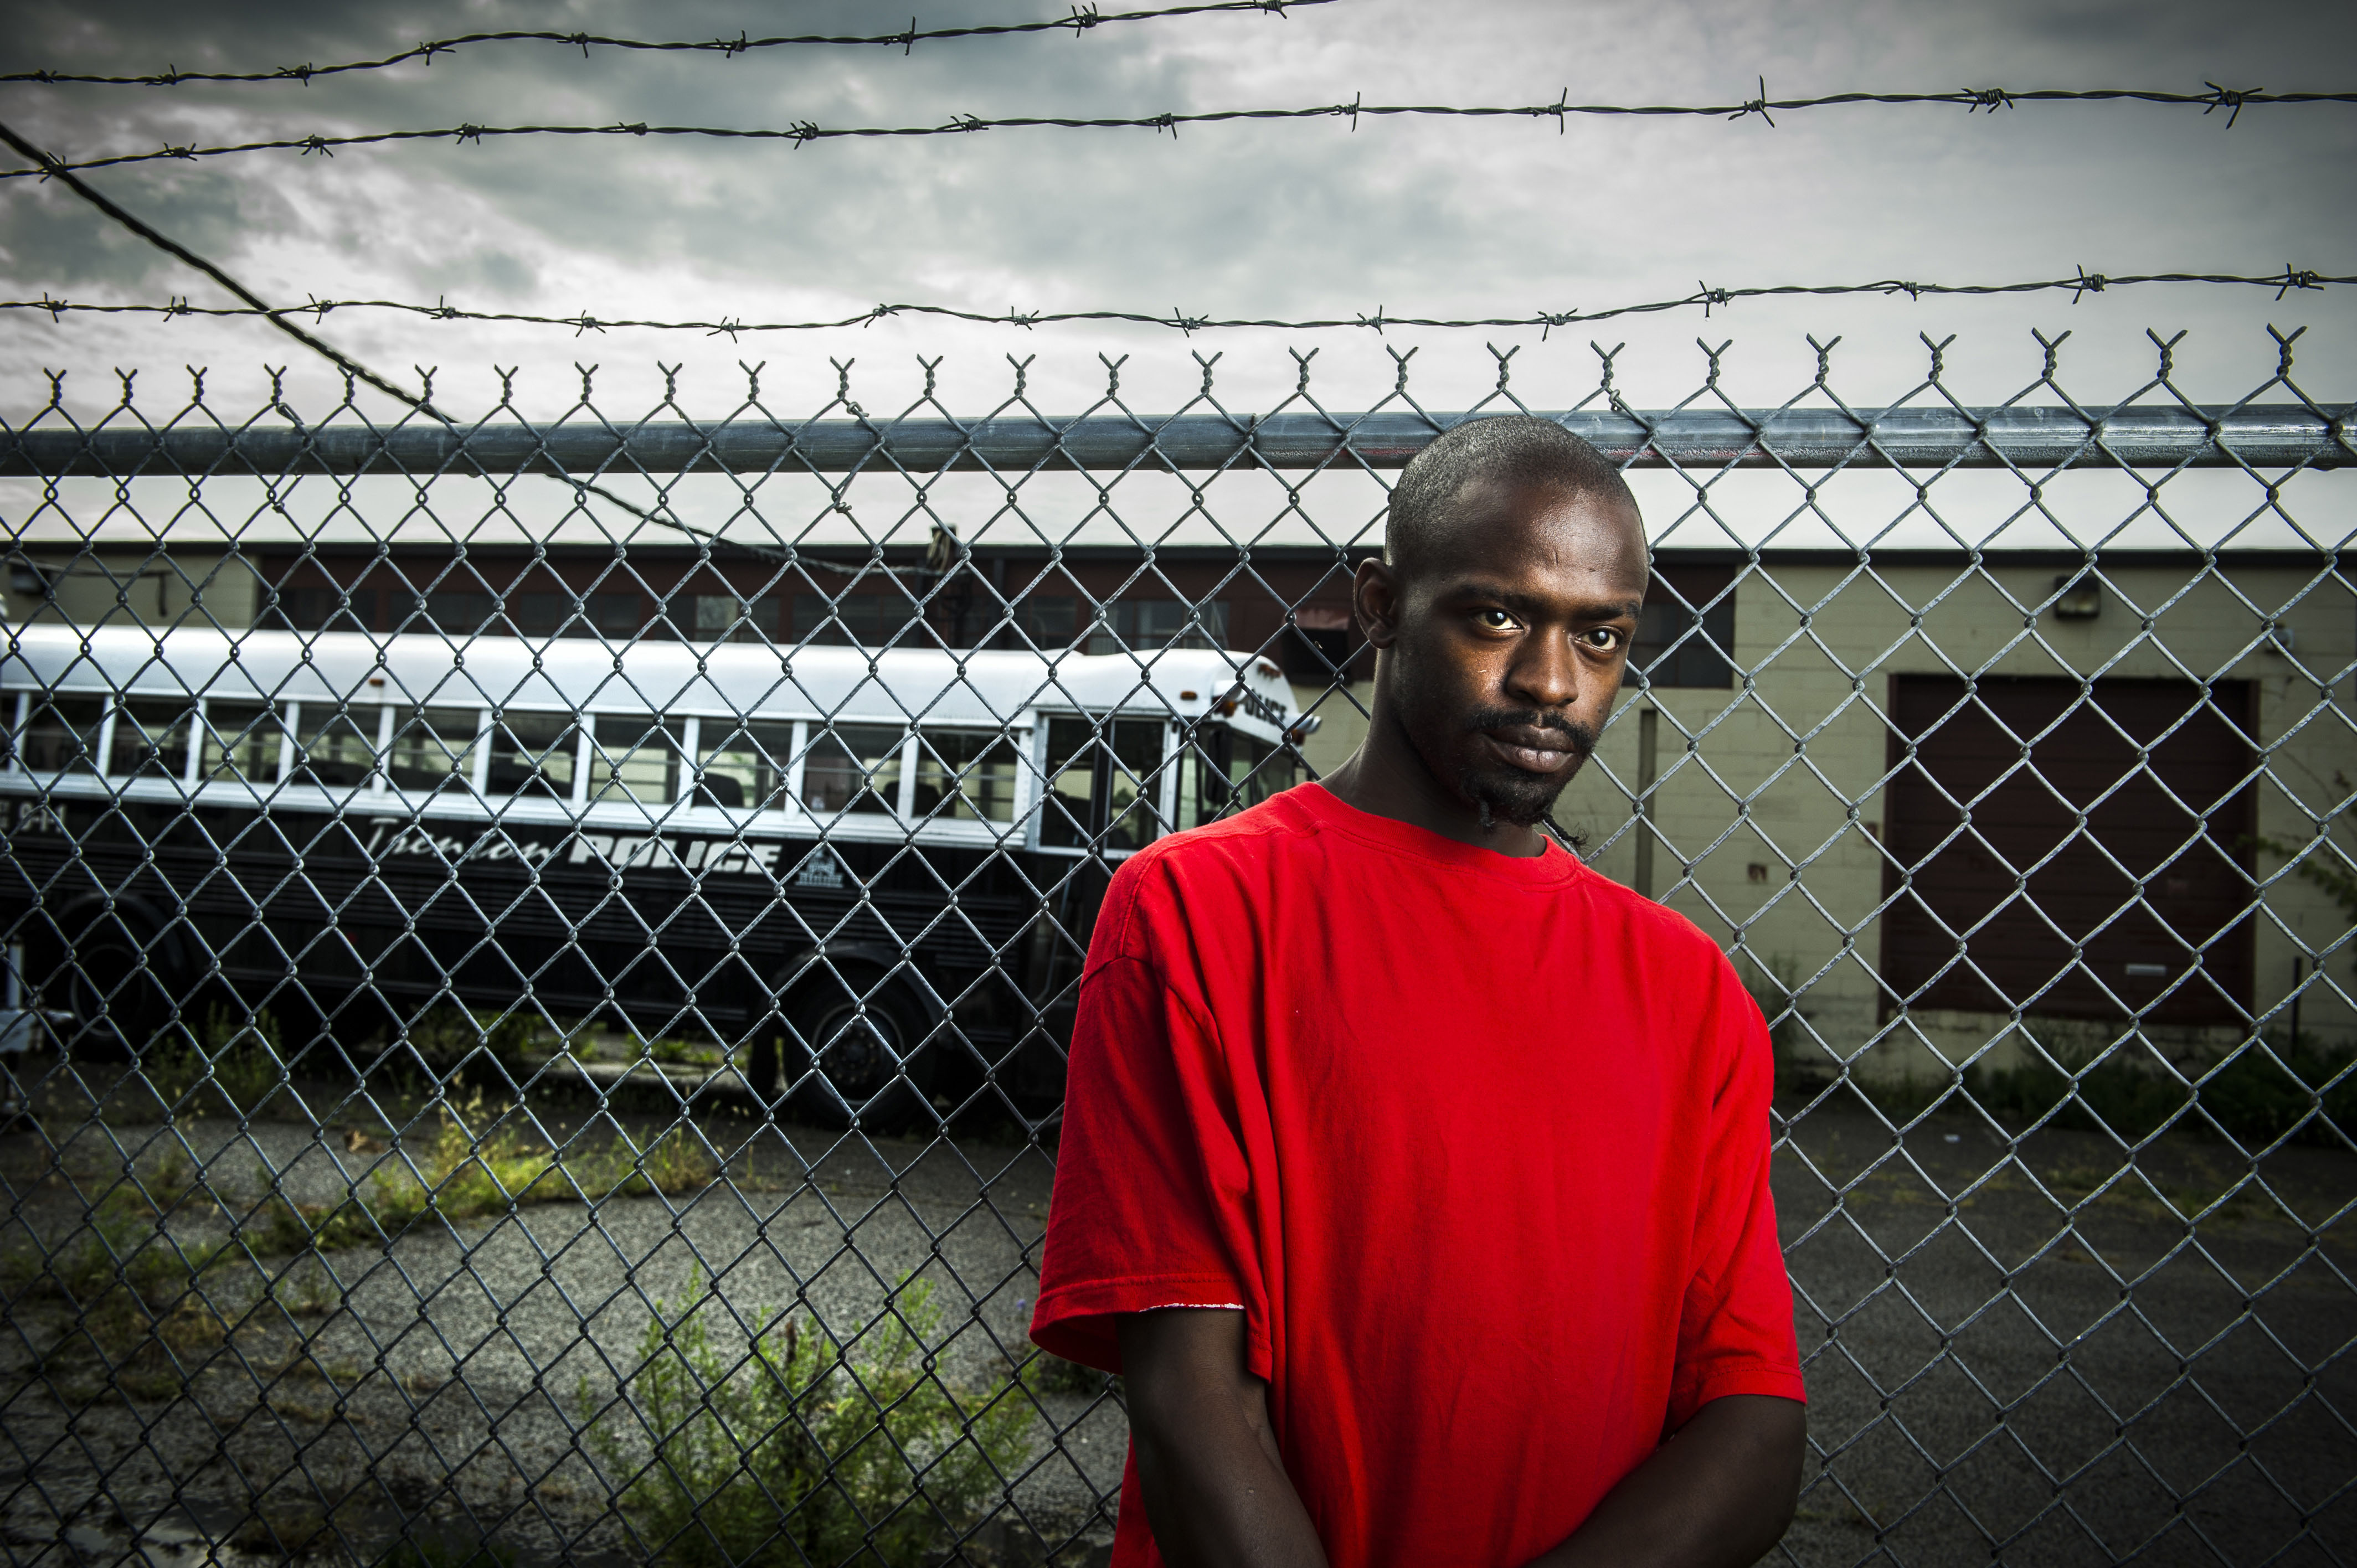 Patrick, a homeless man and artist,  has struggled to stay out of trouble. He stands just outside the barbed wire fencing surrounding the Trenton Police Dept.  Photographed for the Trenton Health Team